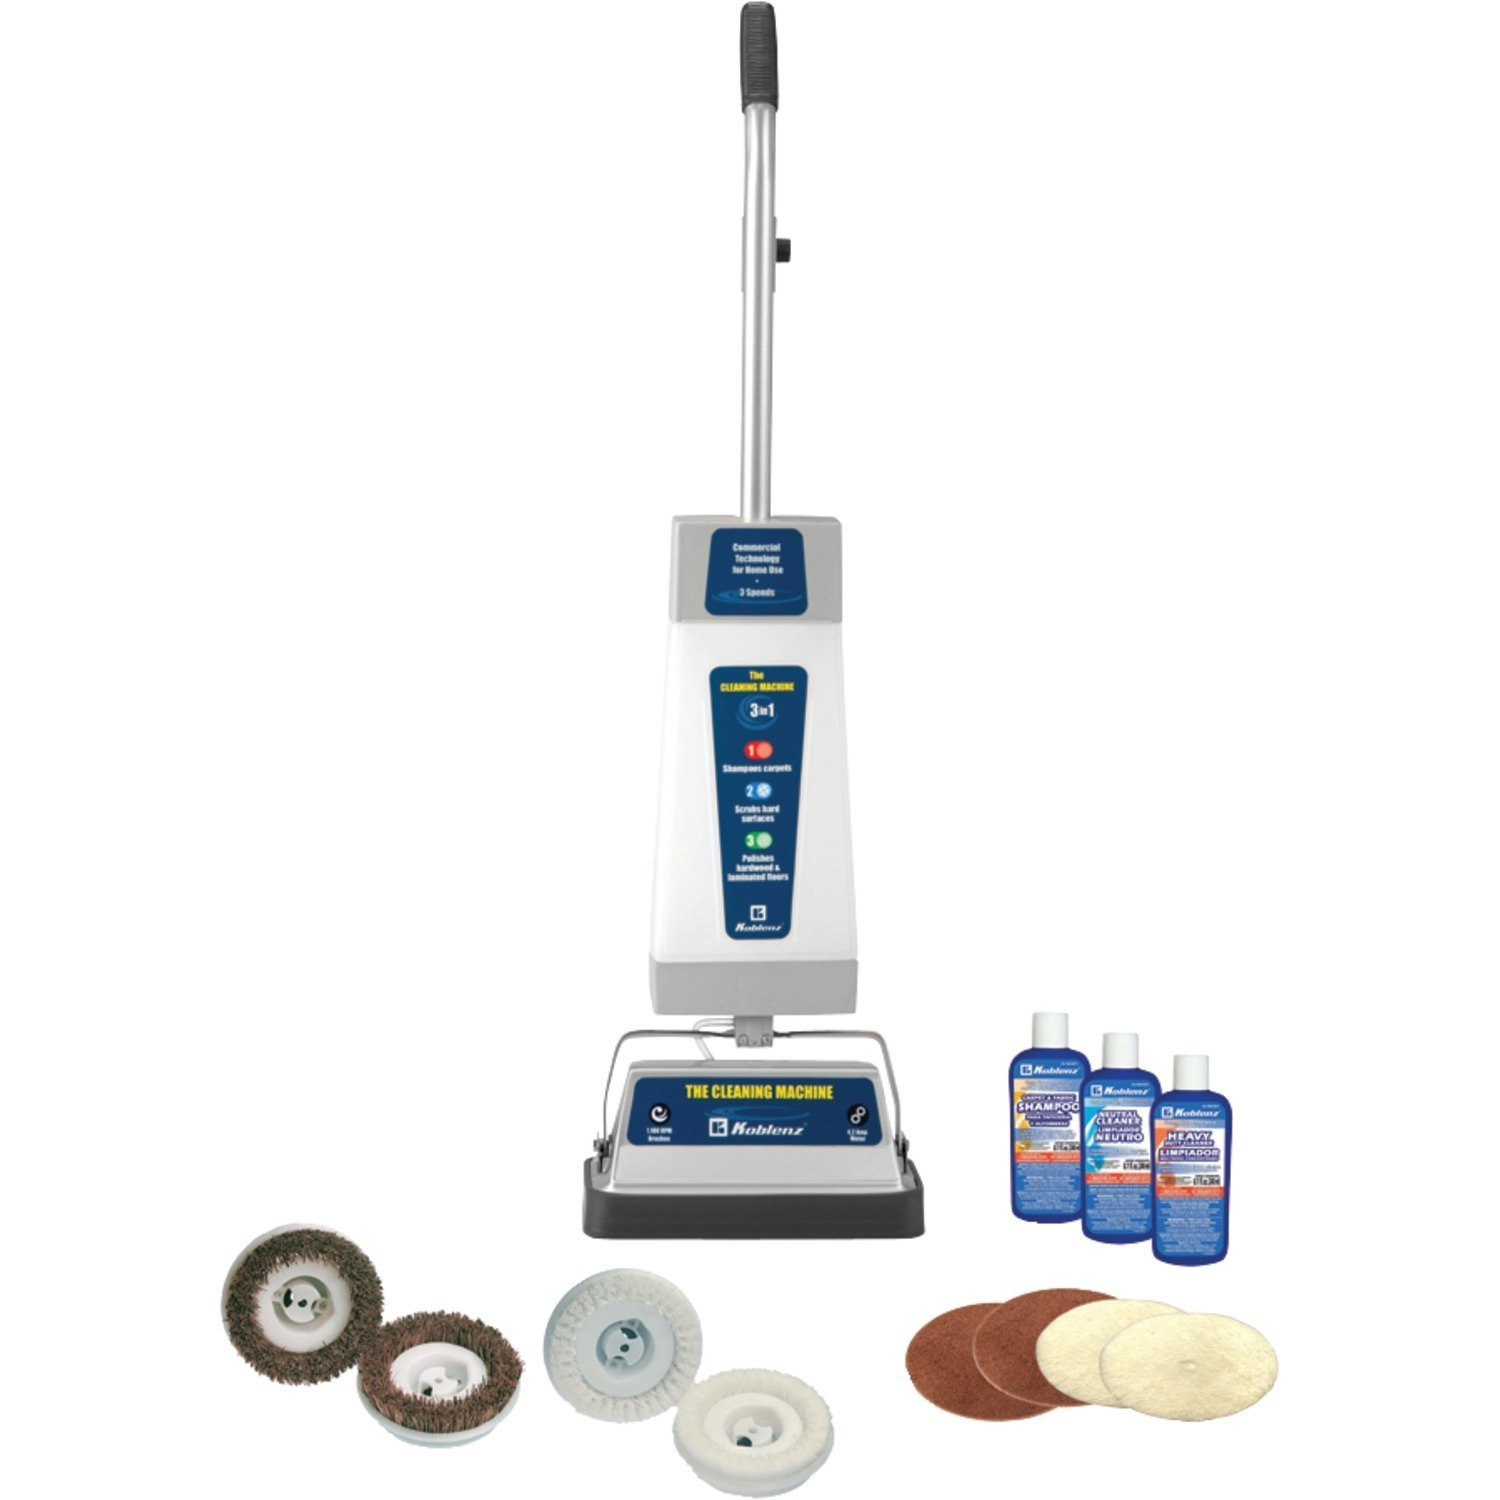 Koblenz Shampooer Polisher Cleaning Machine